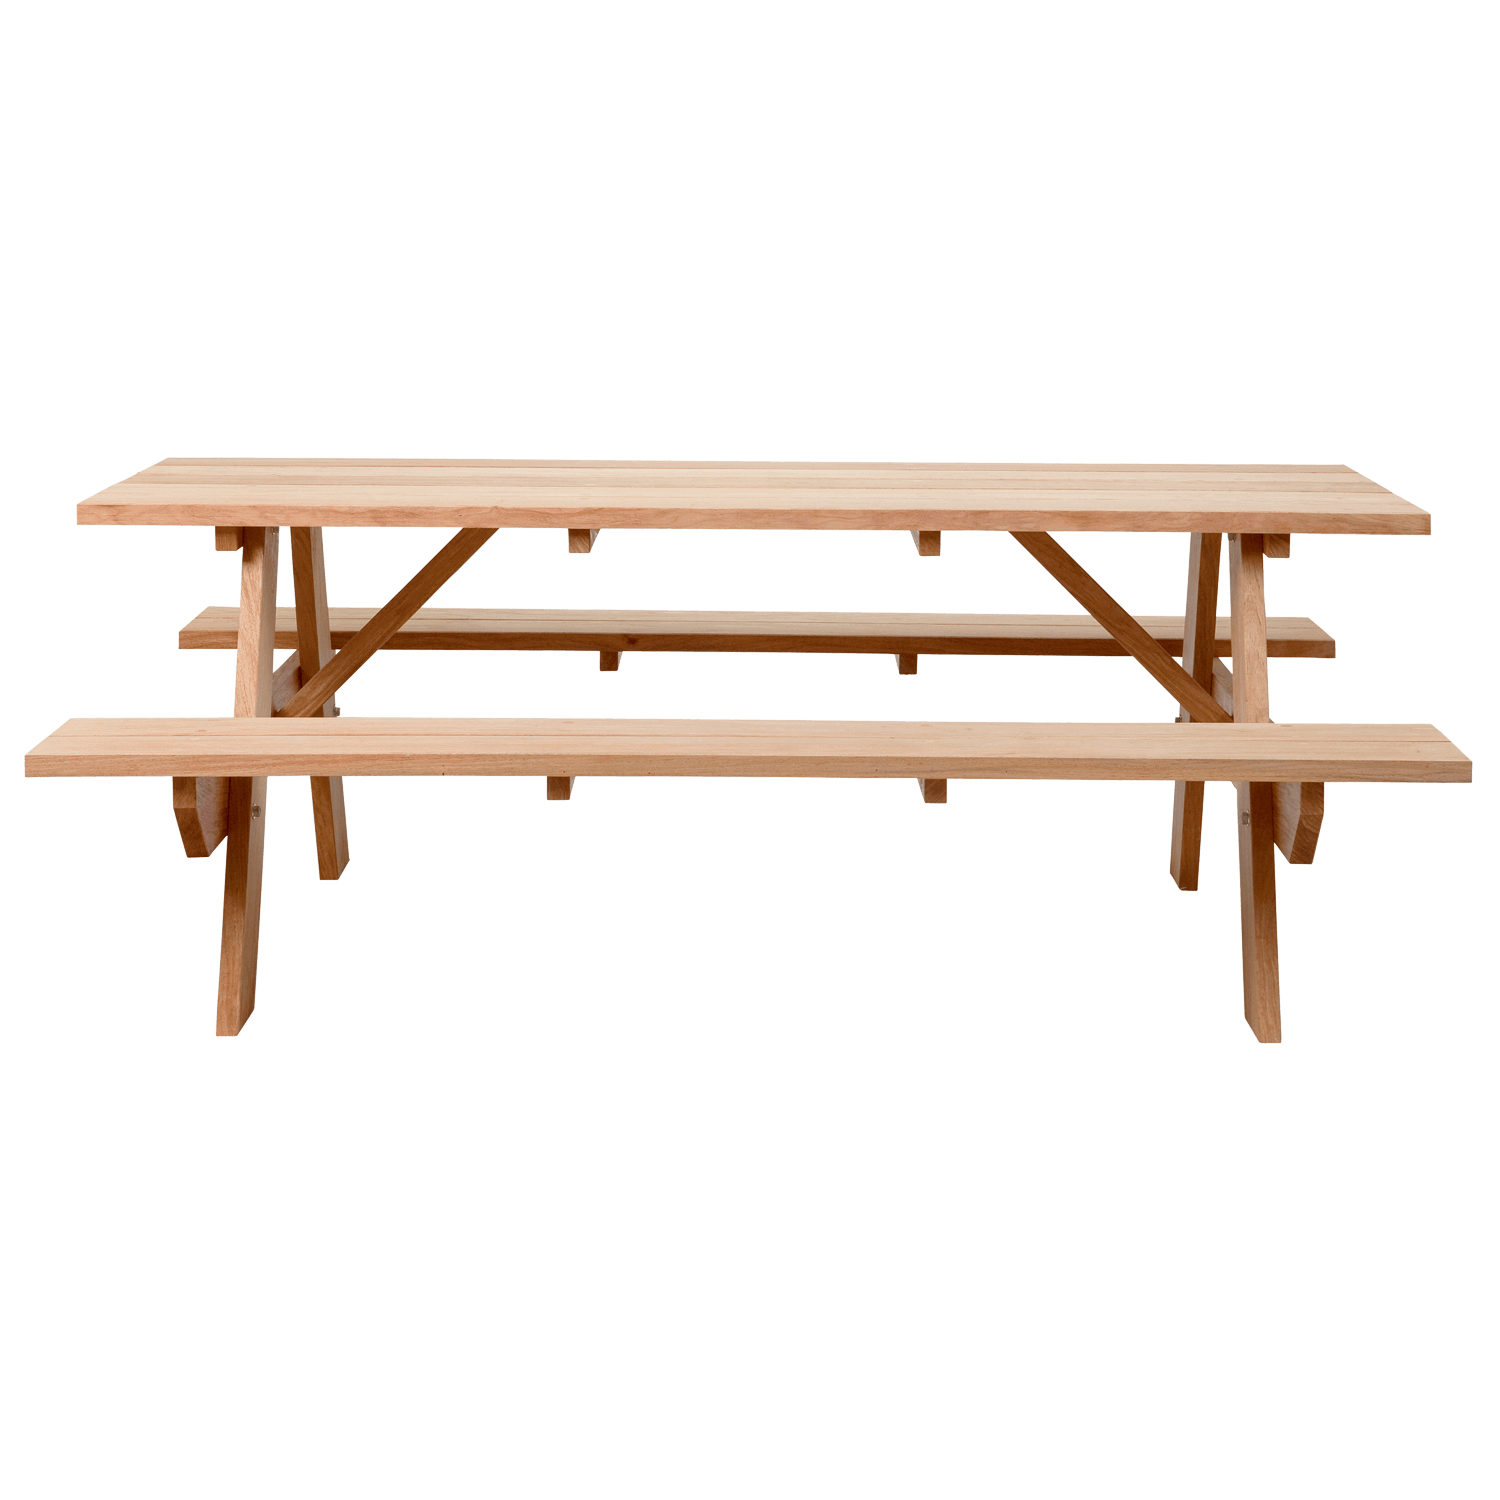 Next - Picnic Bench PNG